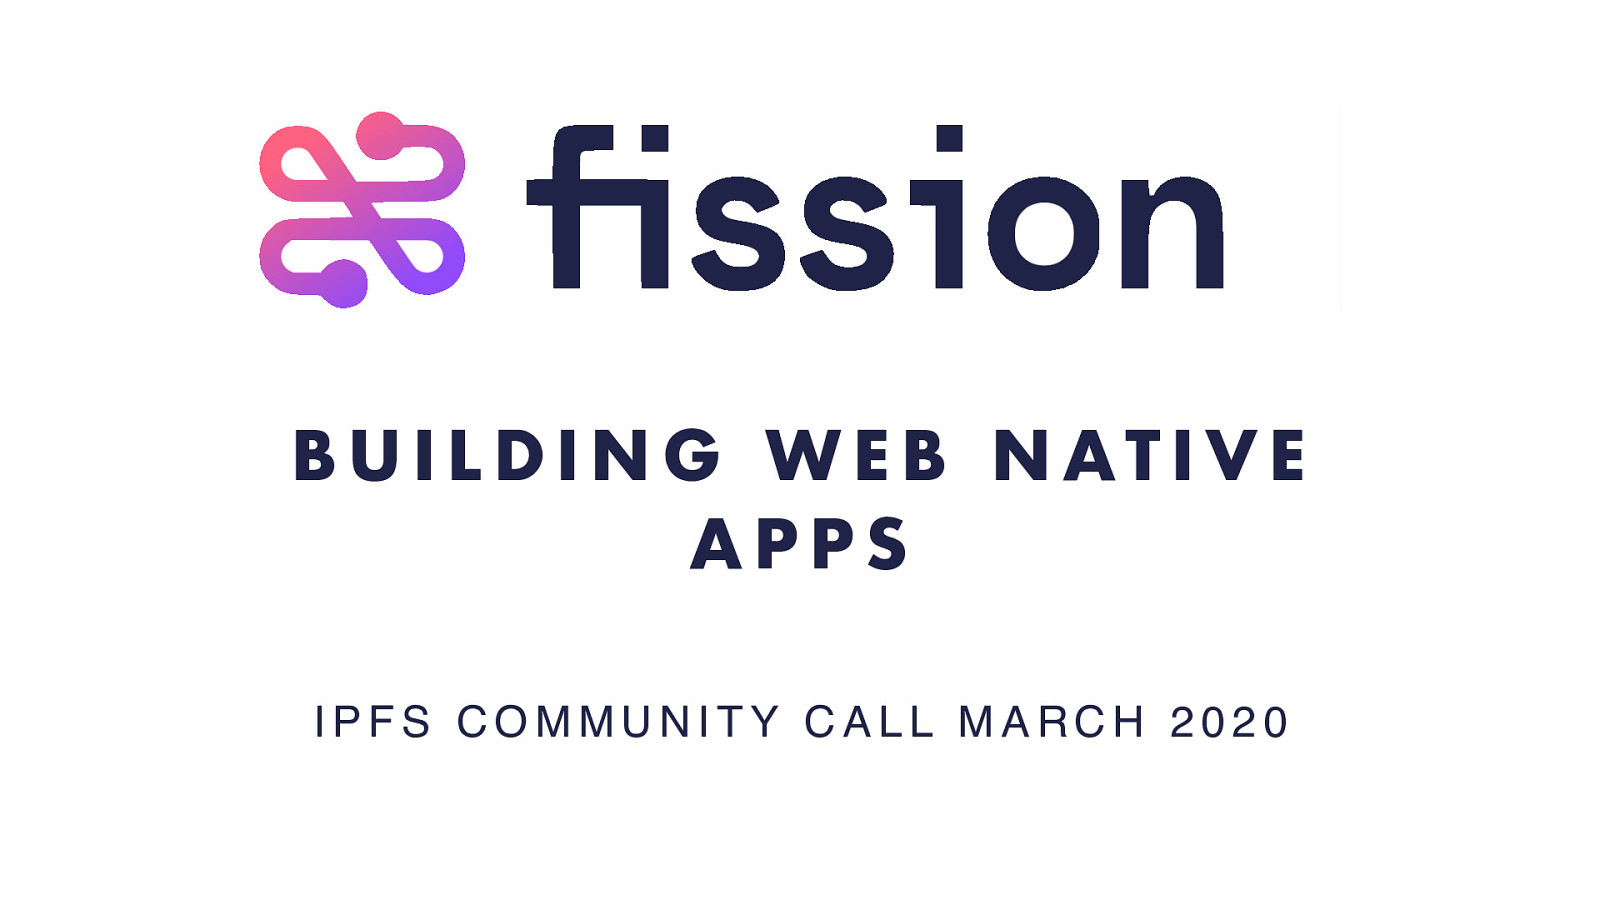 Fission - Building Web Native Apps